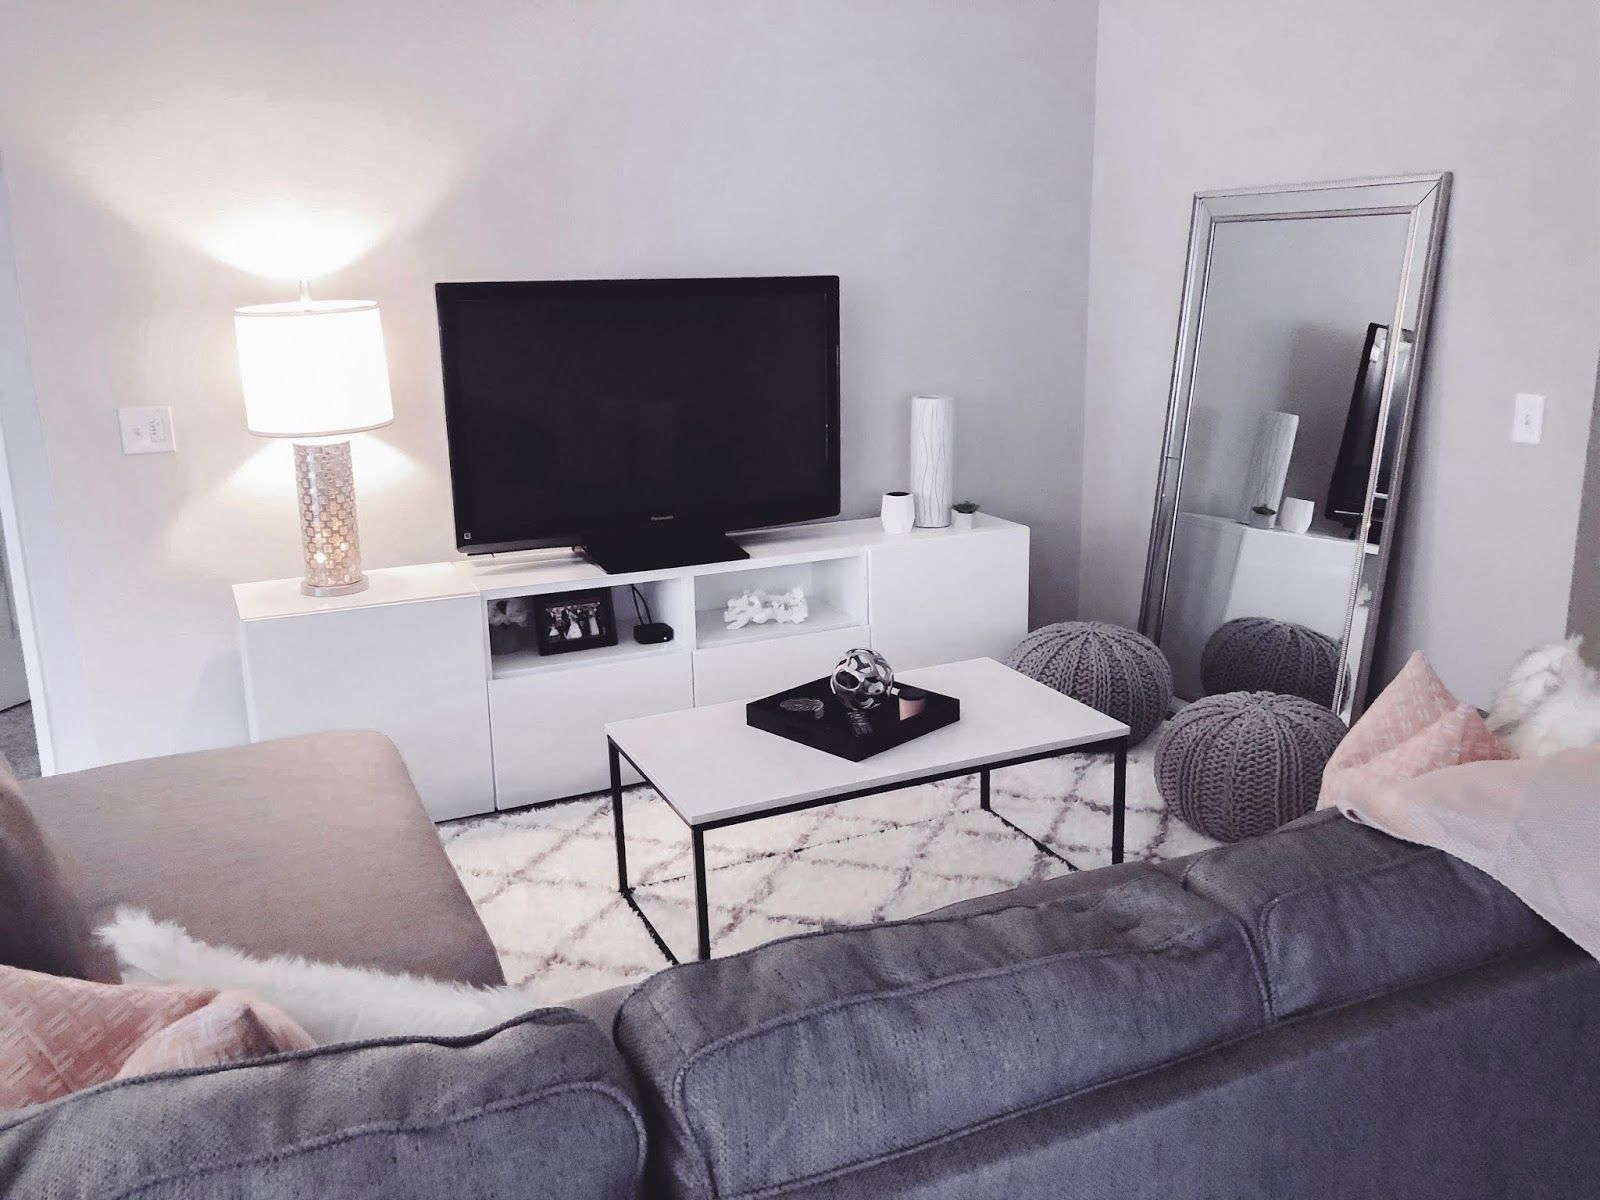 Affordable Apartment Decor Living Room Tv Stand Grey Couch Living Room Affordable Apartment Decor